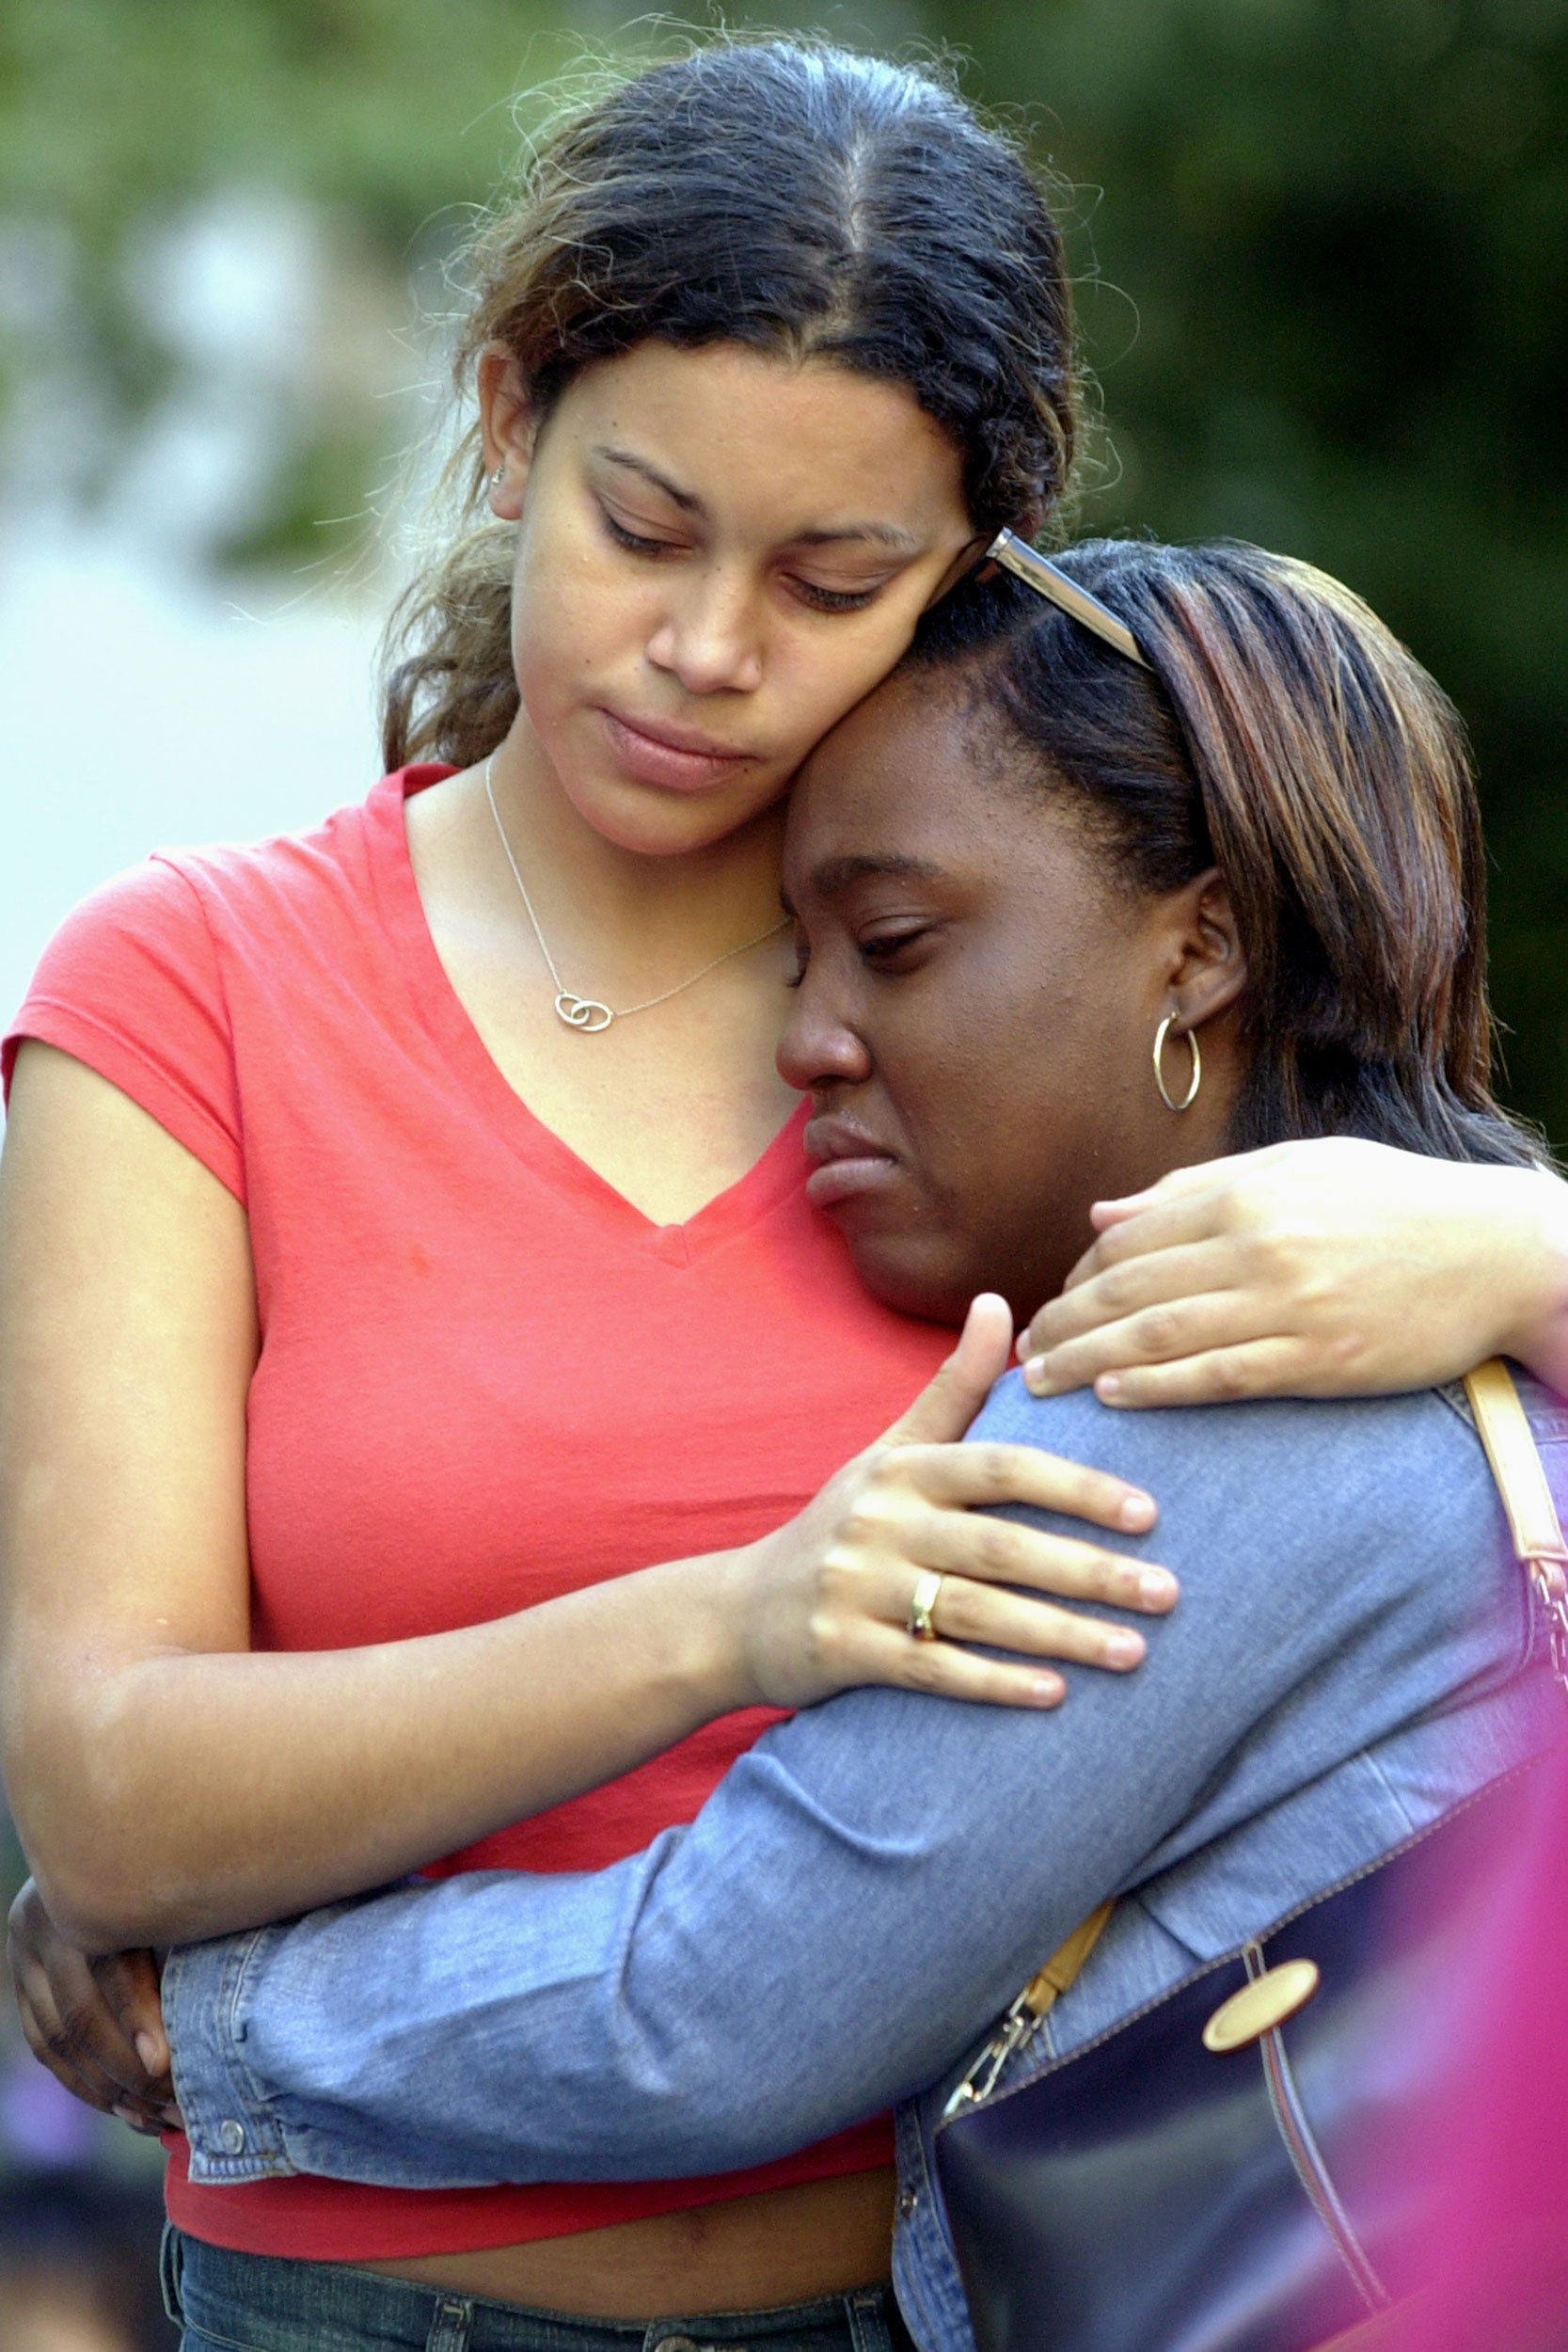 Johanna Paretzky '03 (left) and Kamala Salmon '03 held each other during the campus vigil on Sept. 11.